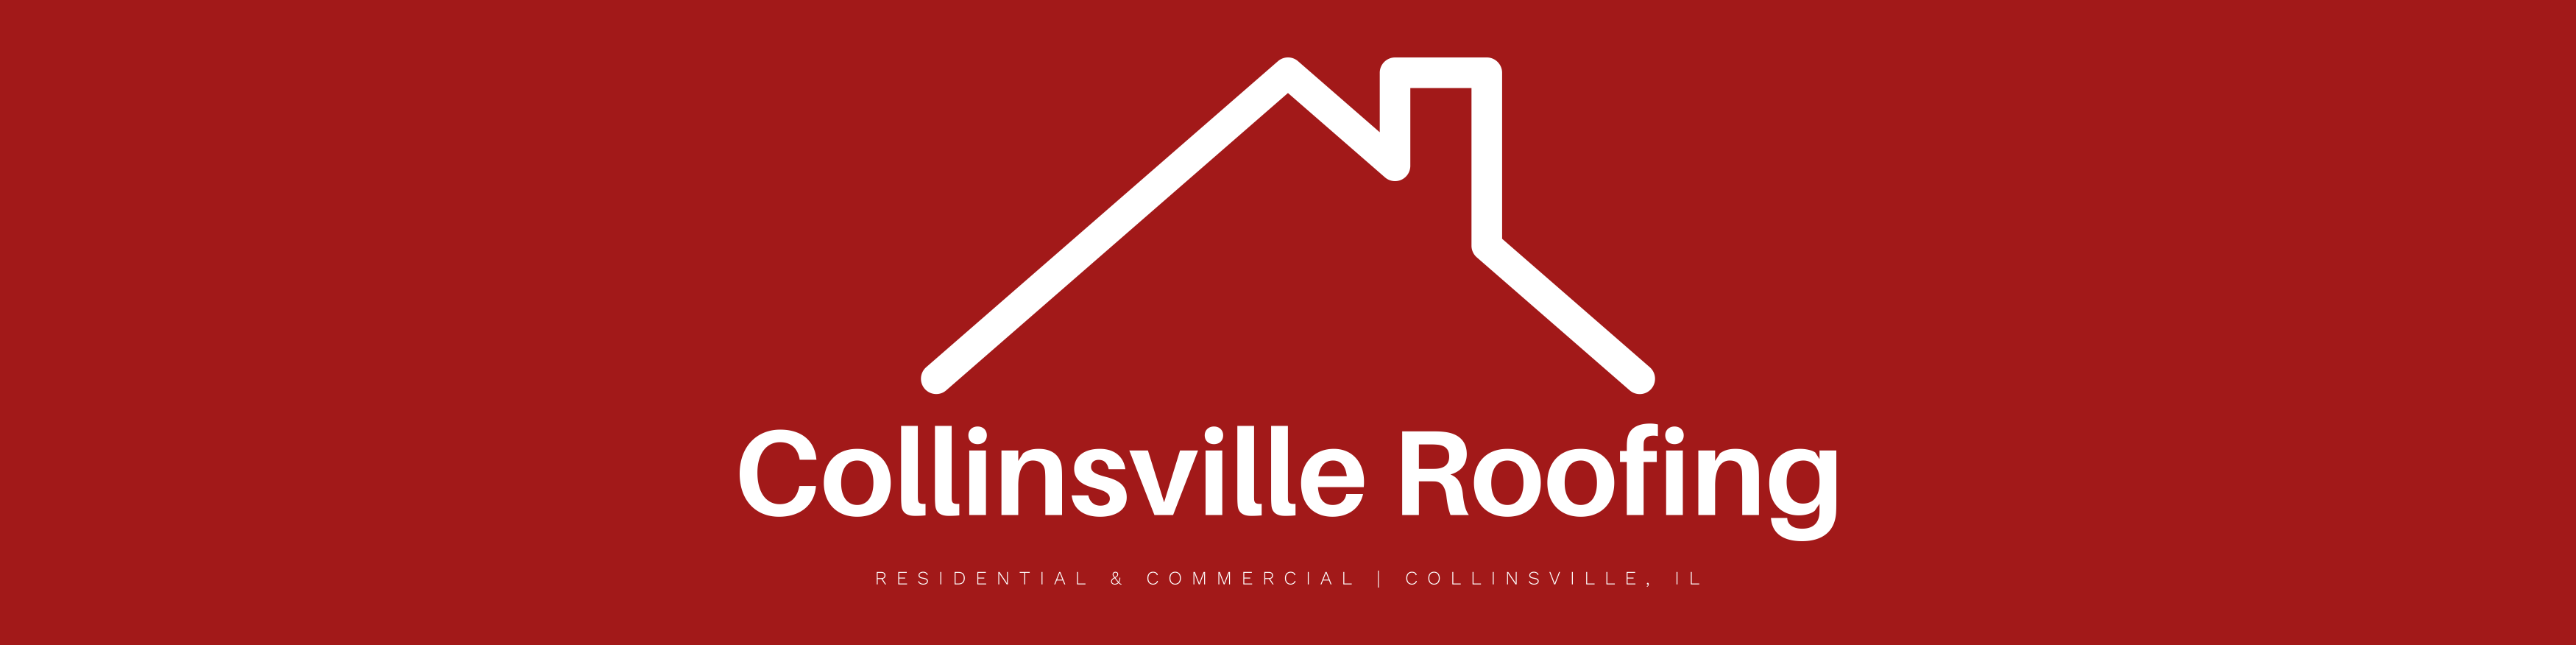 Collinsville Roofing and Siding Company